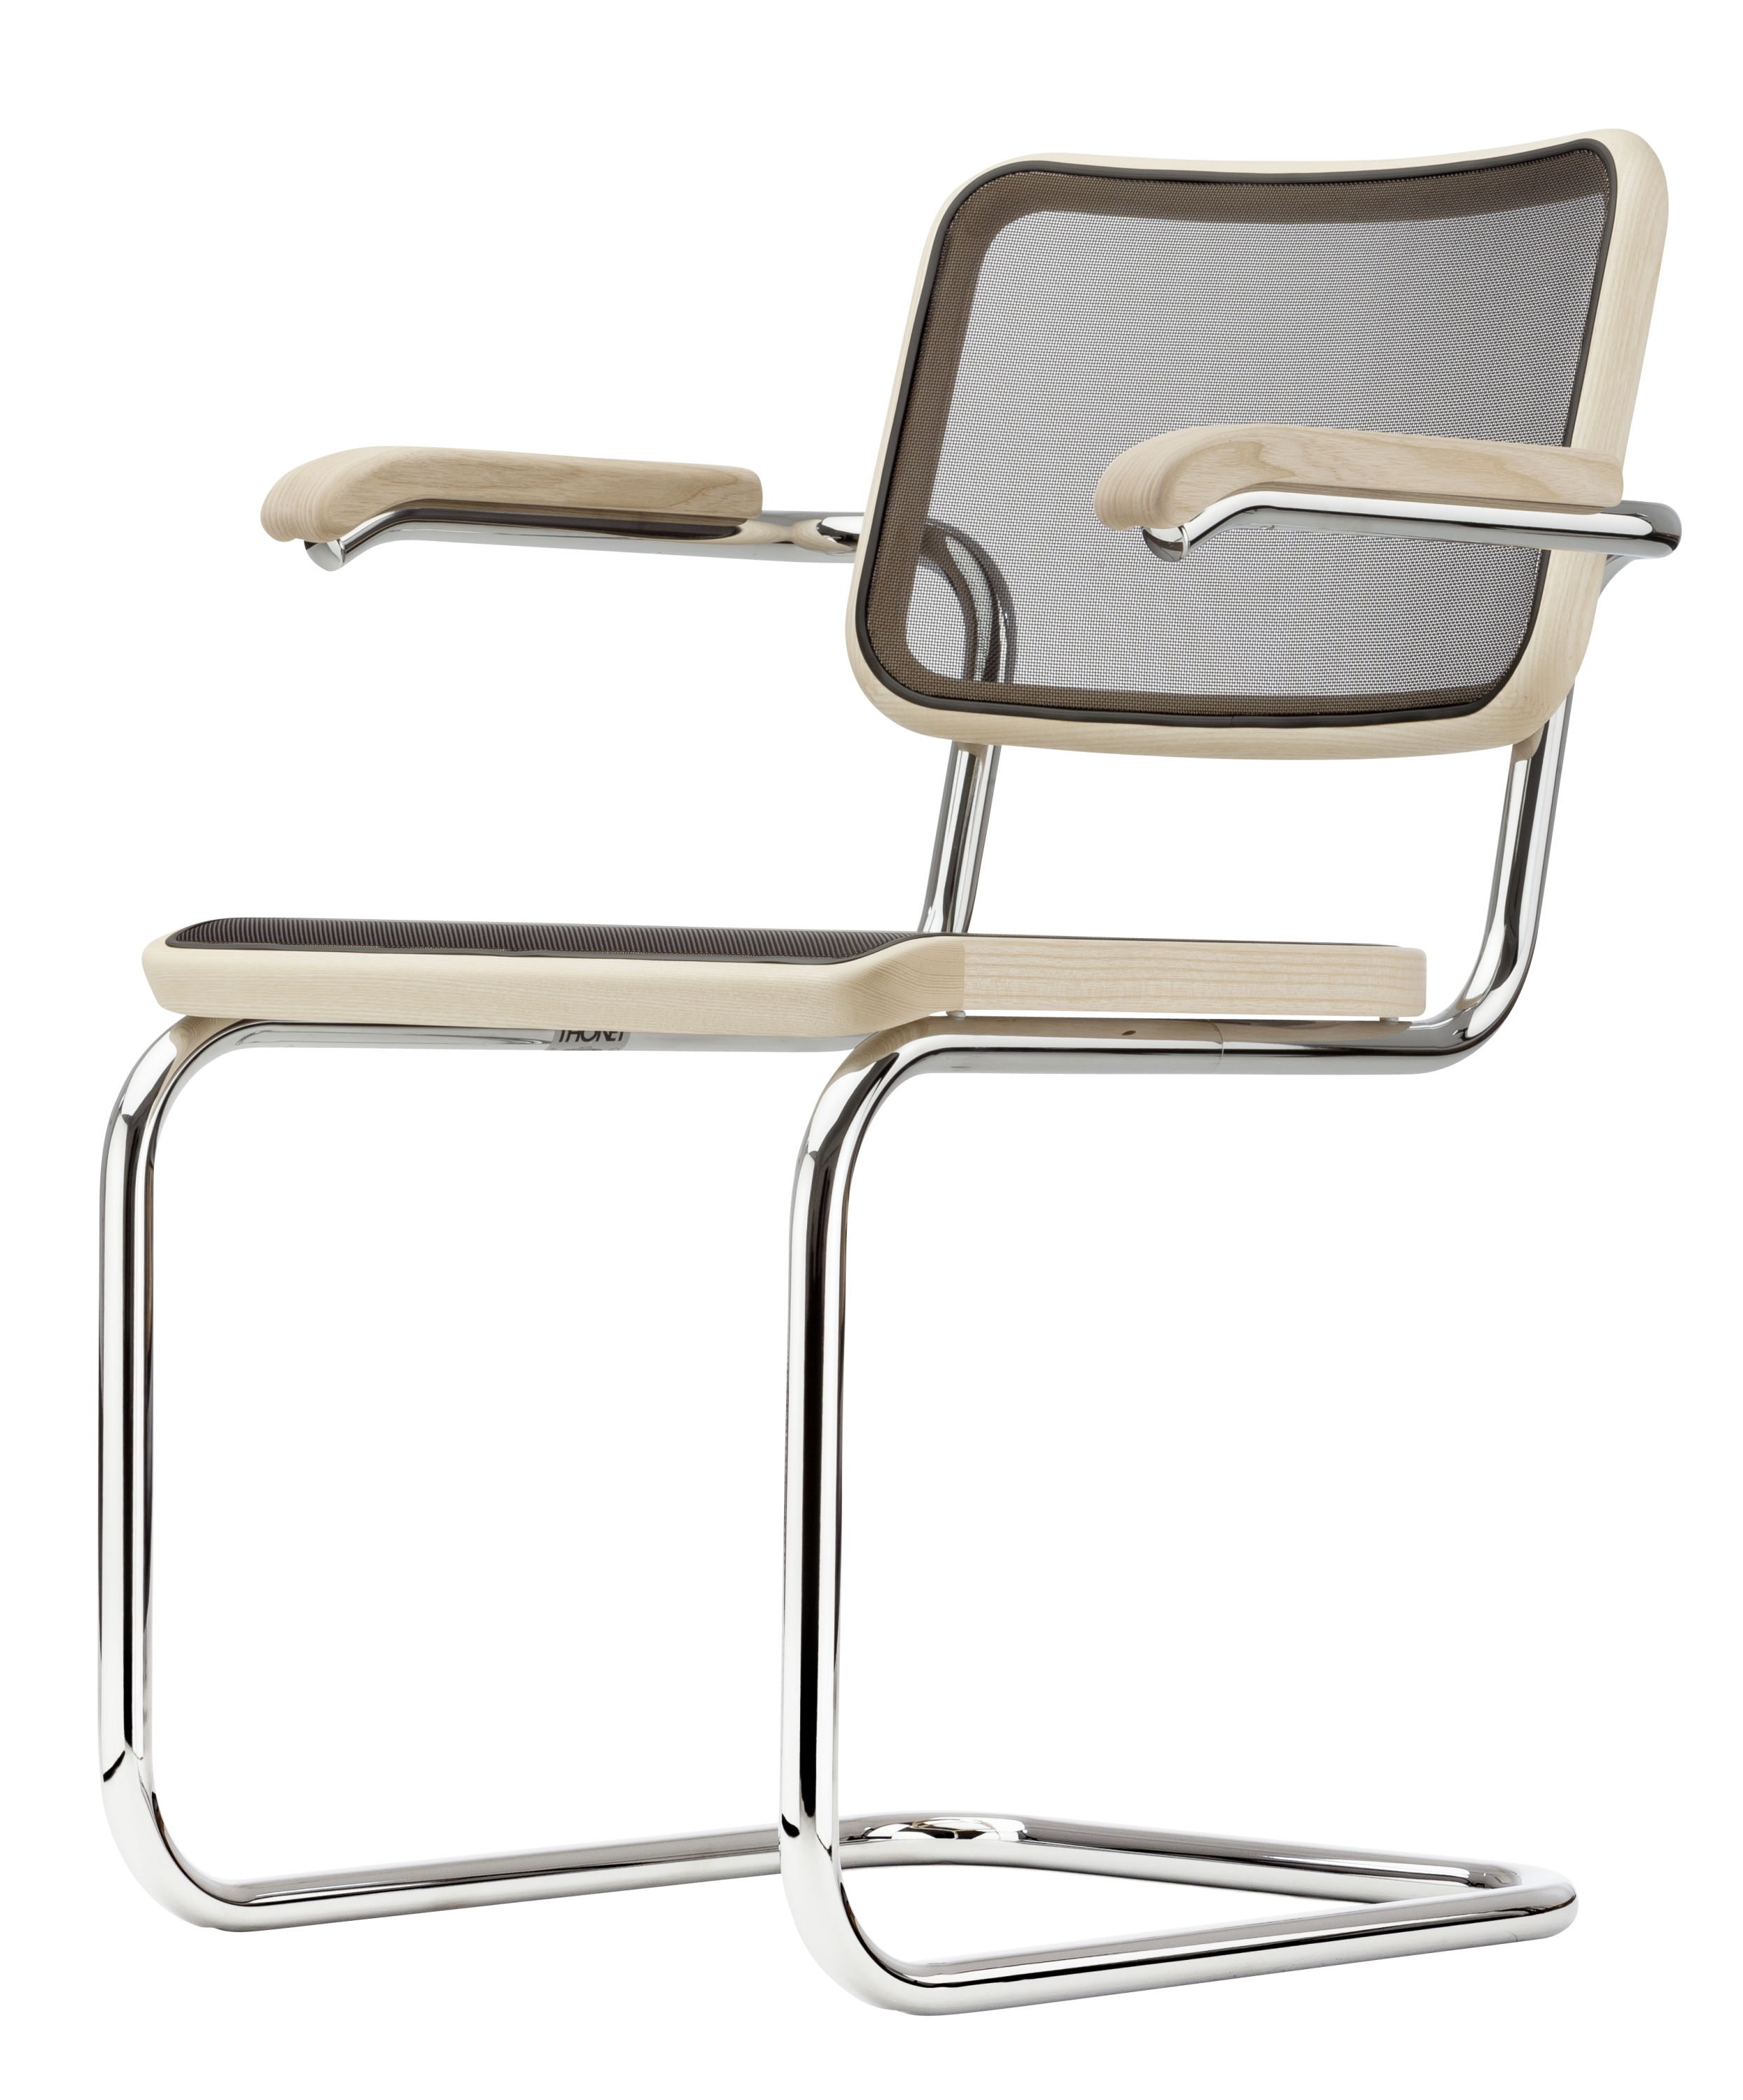 Thonet S32 Chairs S32 S64 Minim Your Meeting Point With Contemporary